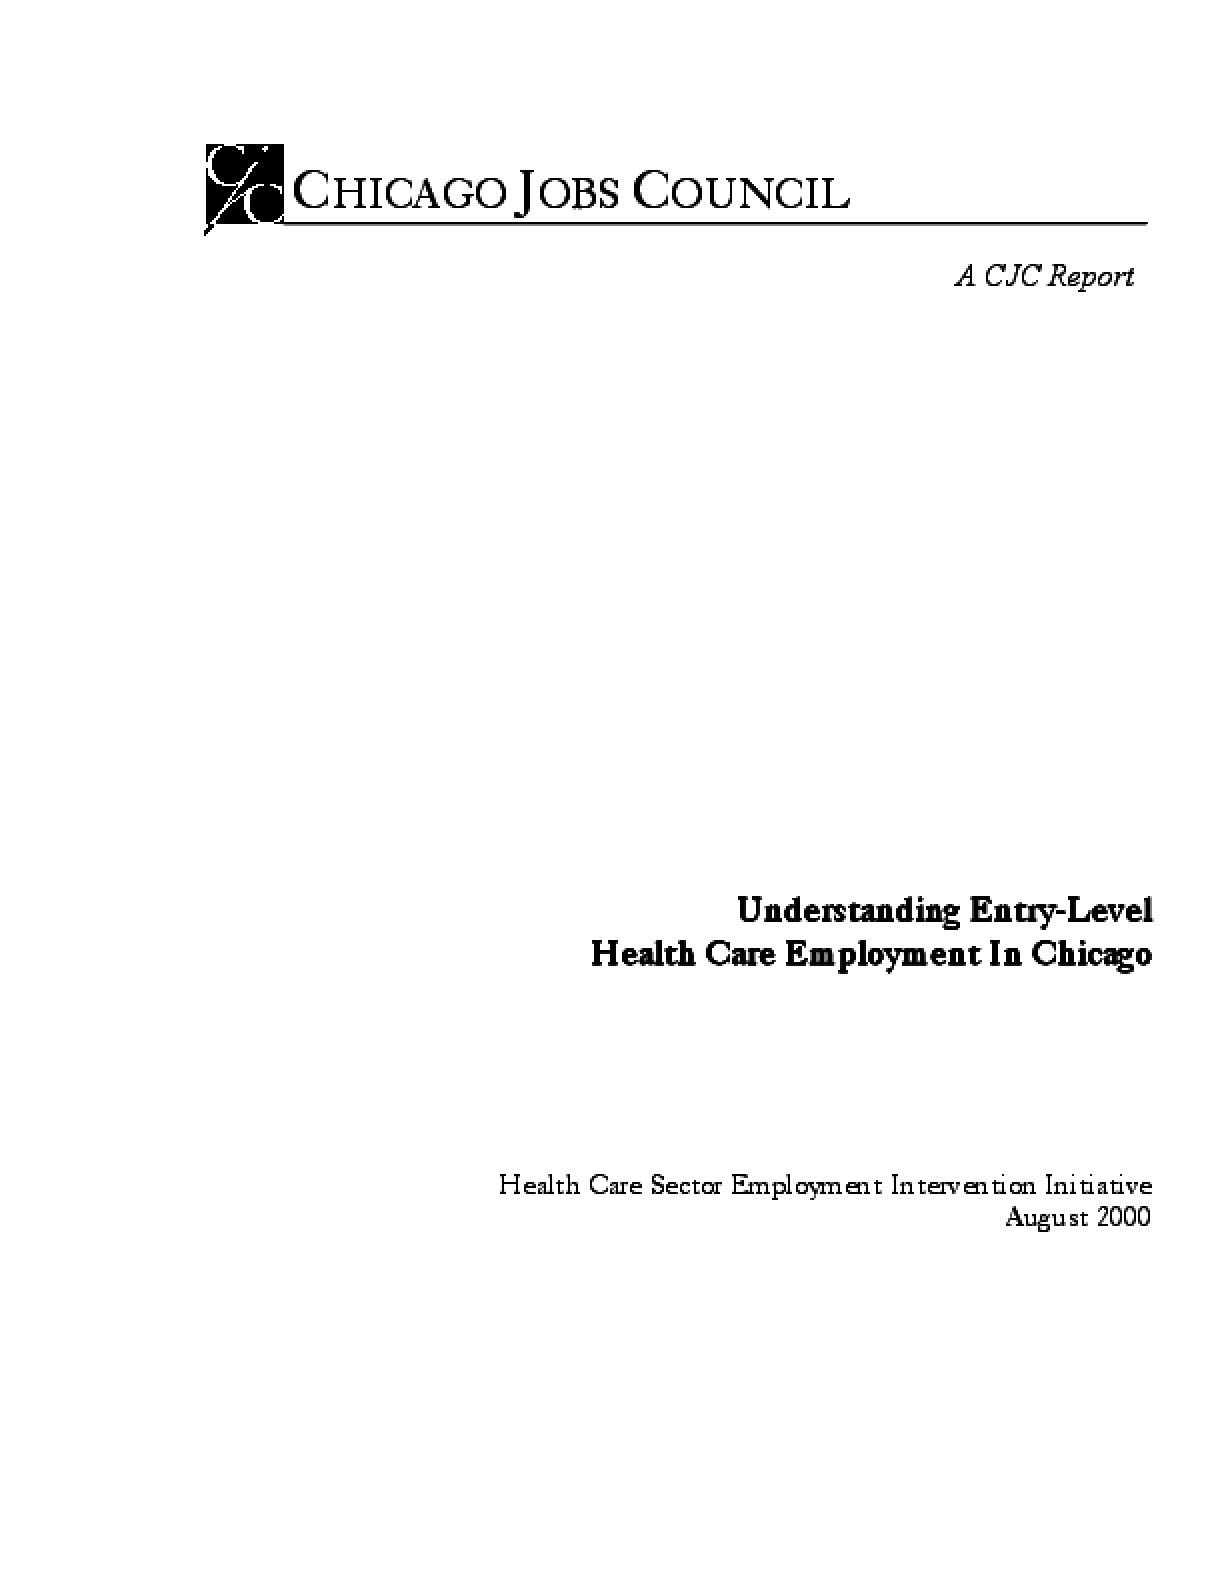 Understanding Entry-Level Health Care Employment in Chicago